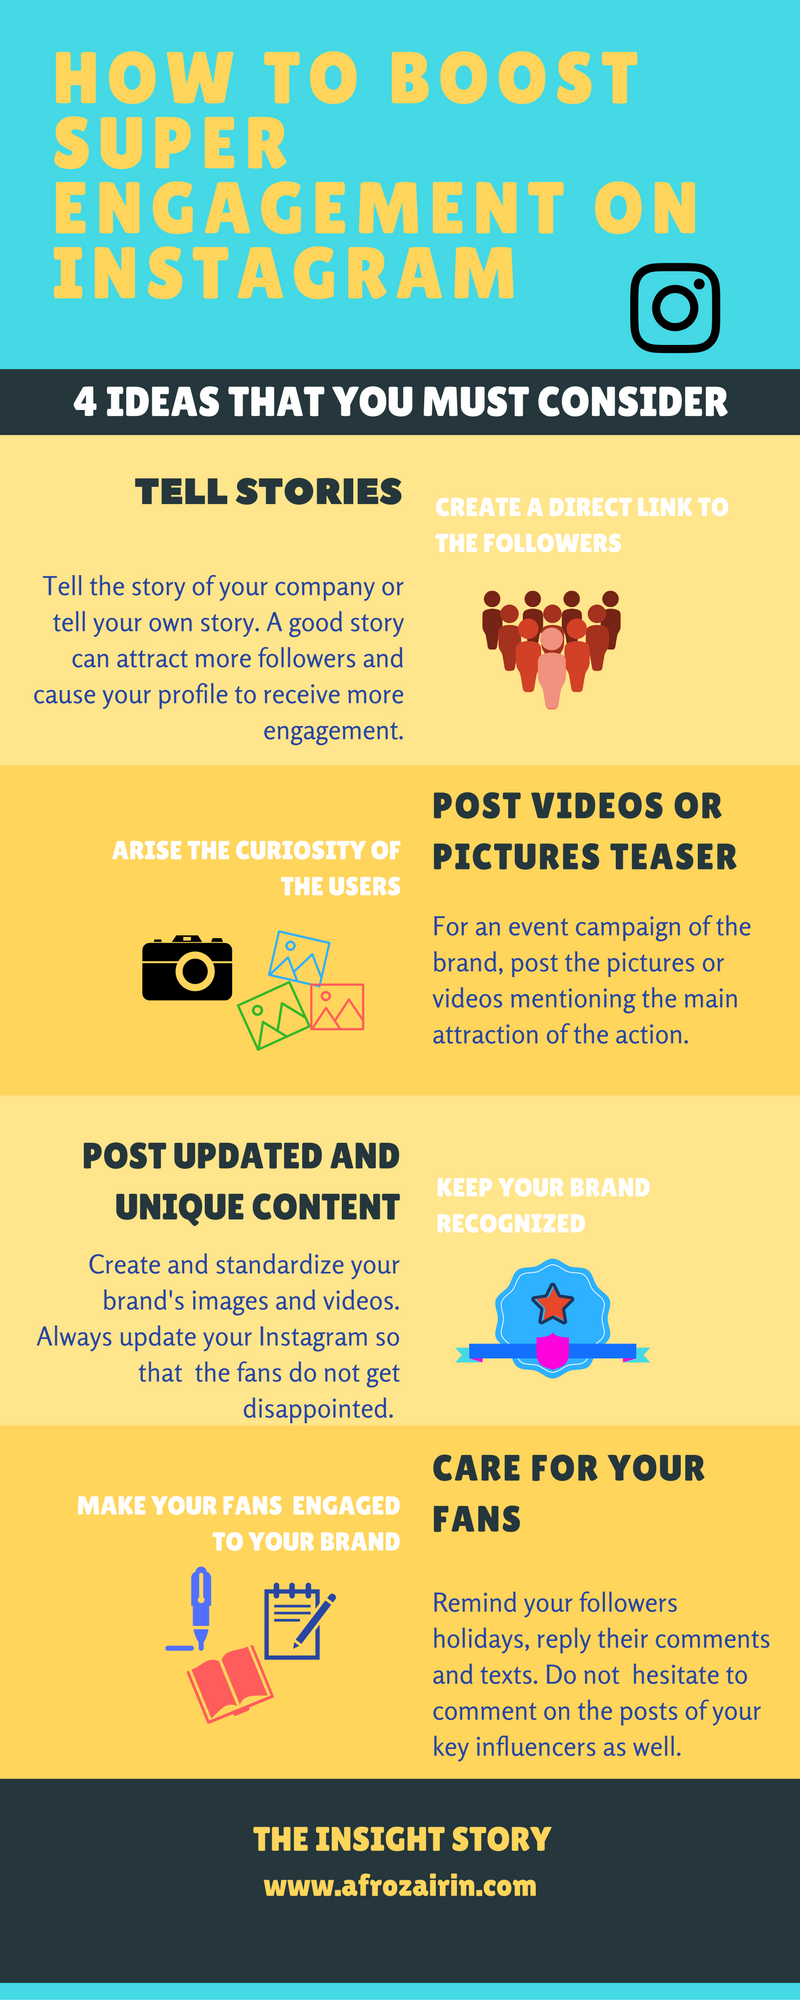 How to boost super engagement on Instagram